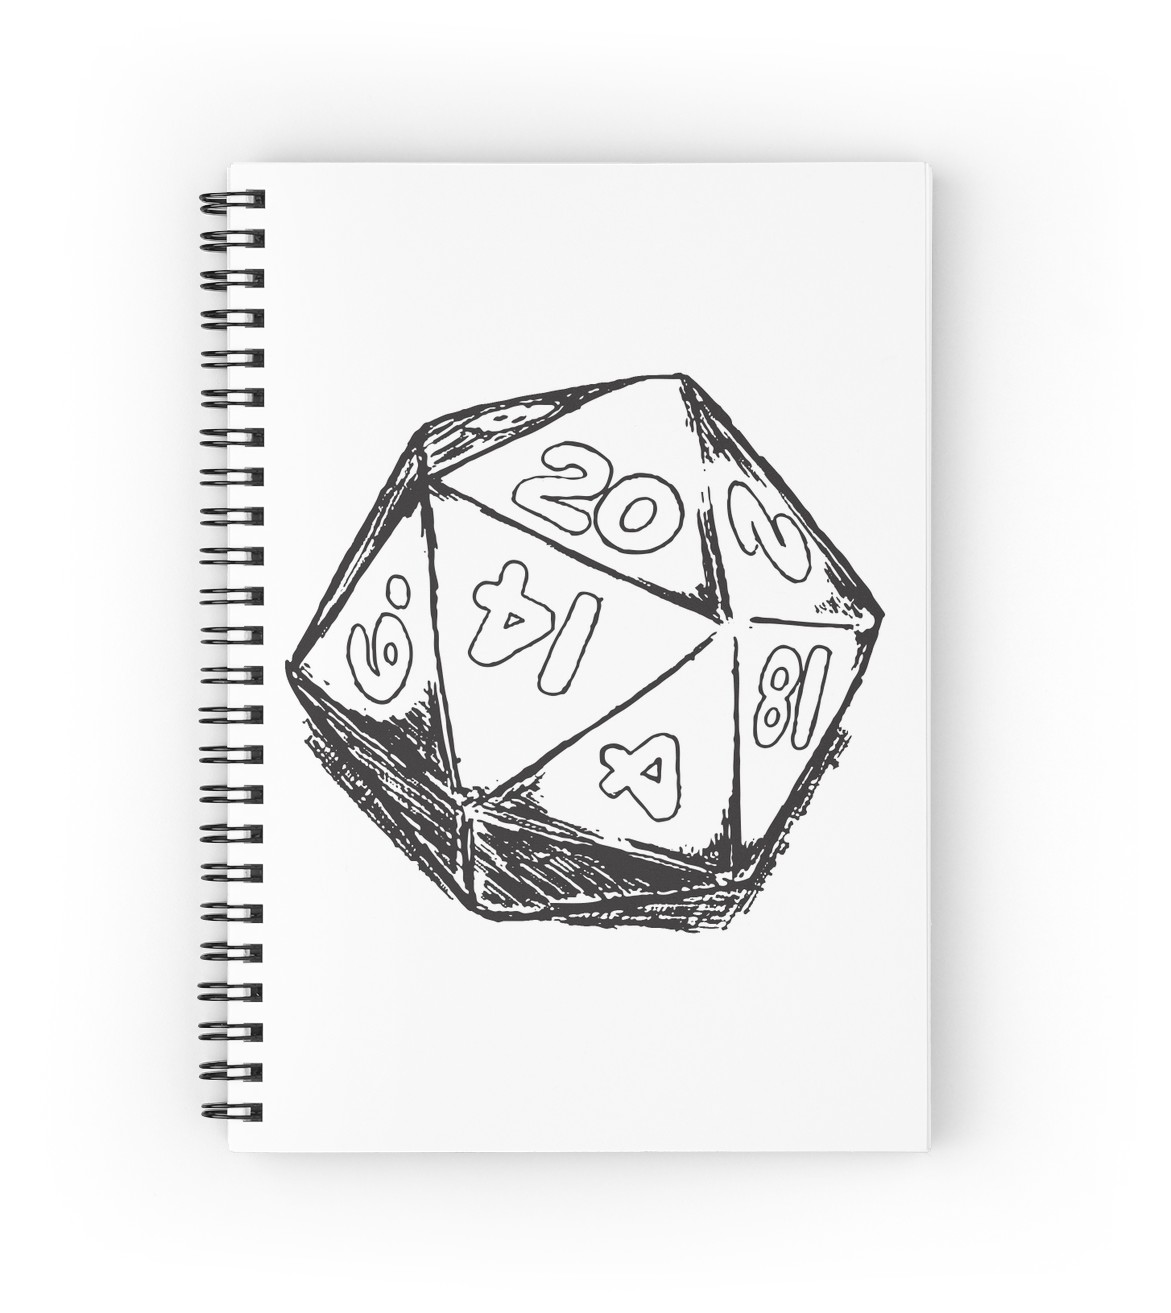 1171x1313 D20 Dice Spiral Notebooks By Hinomaru17 Redbubble